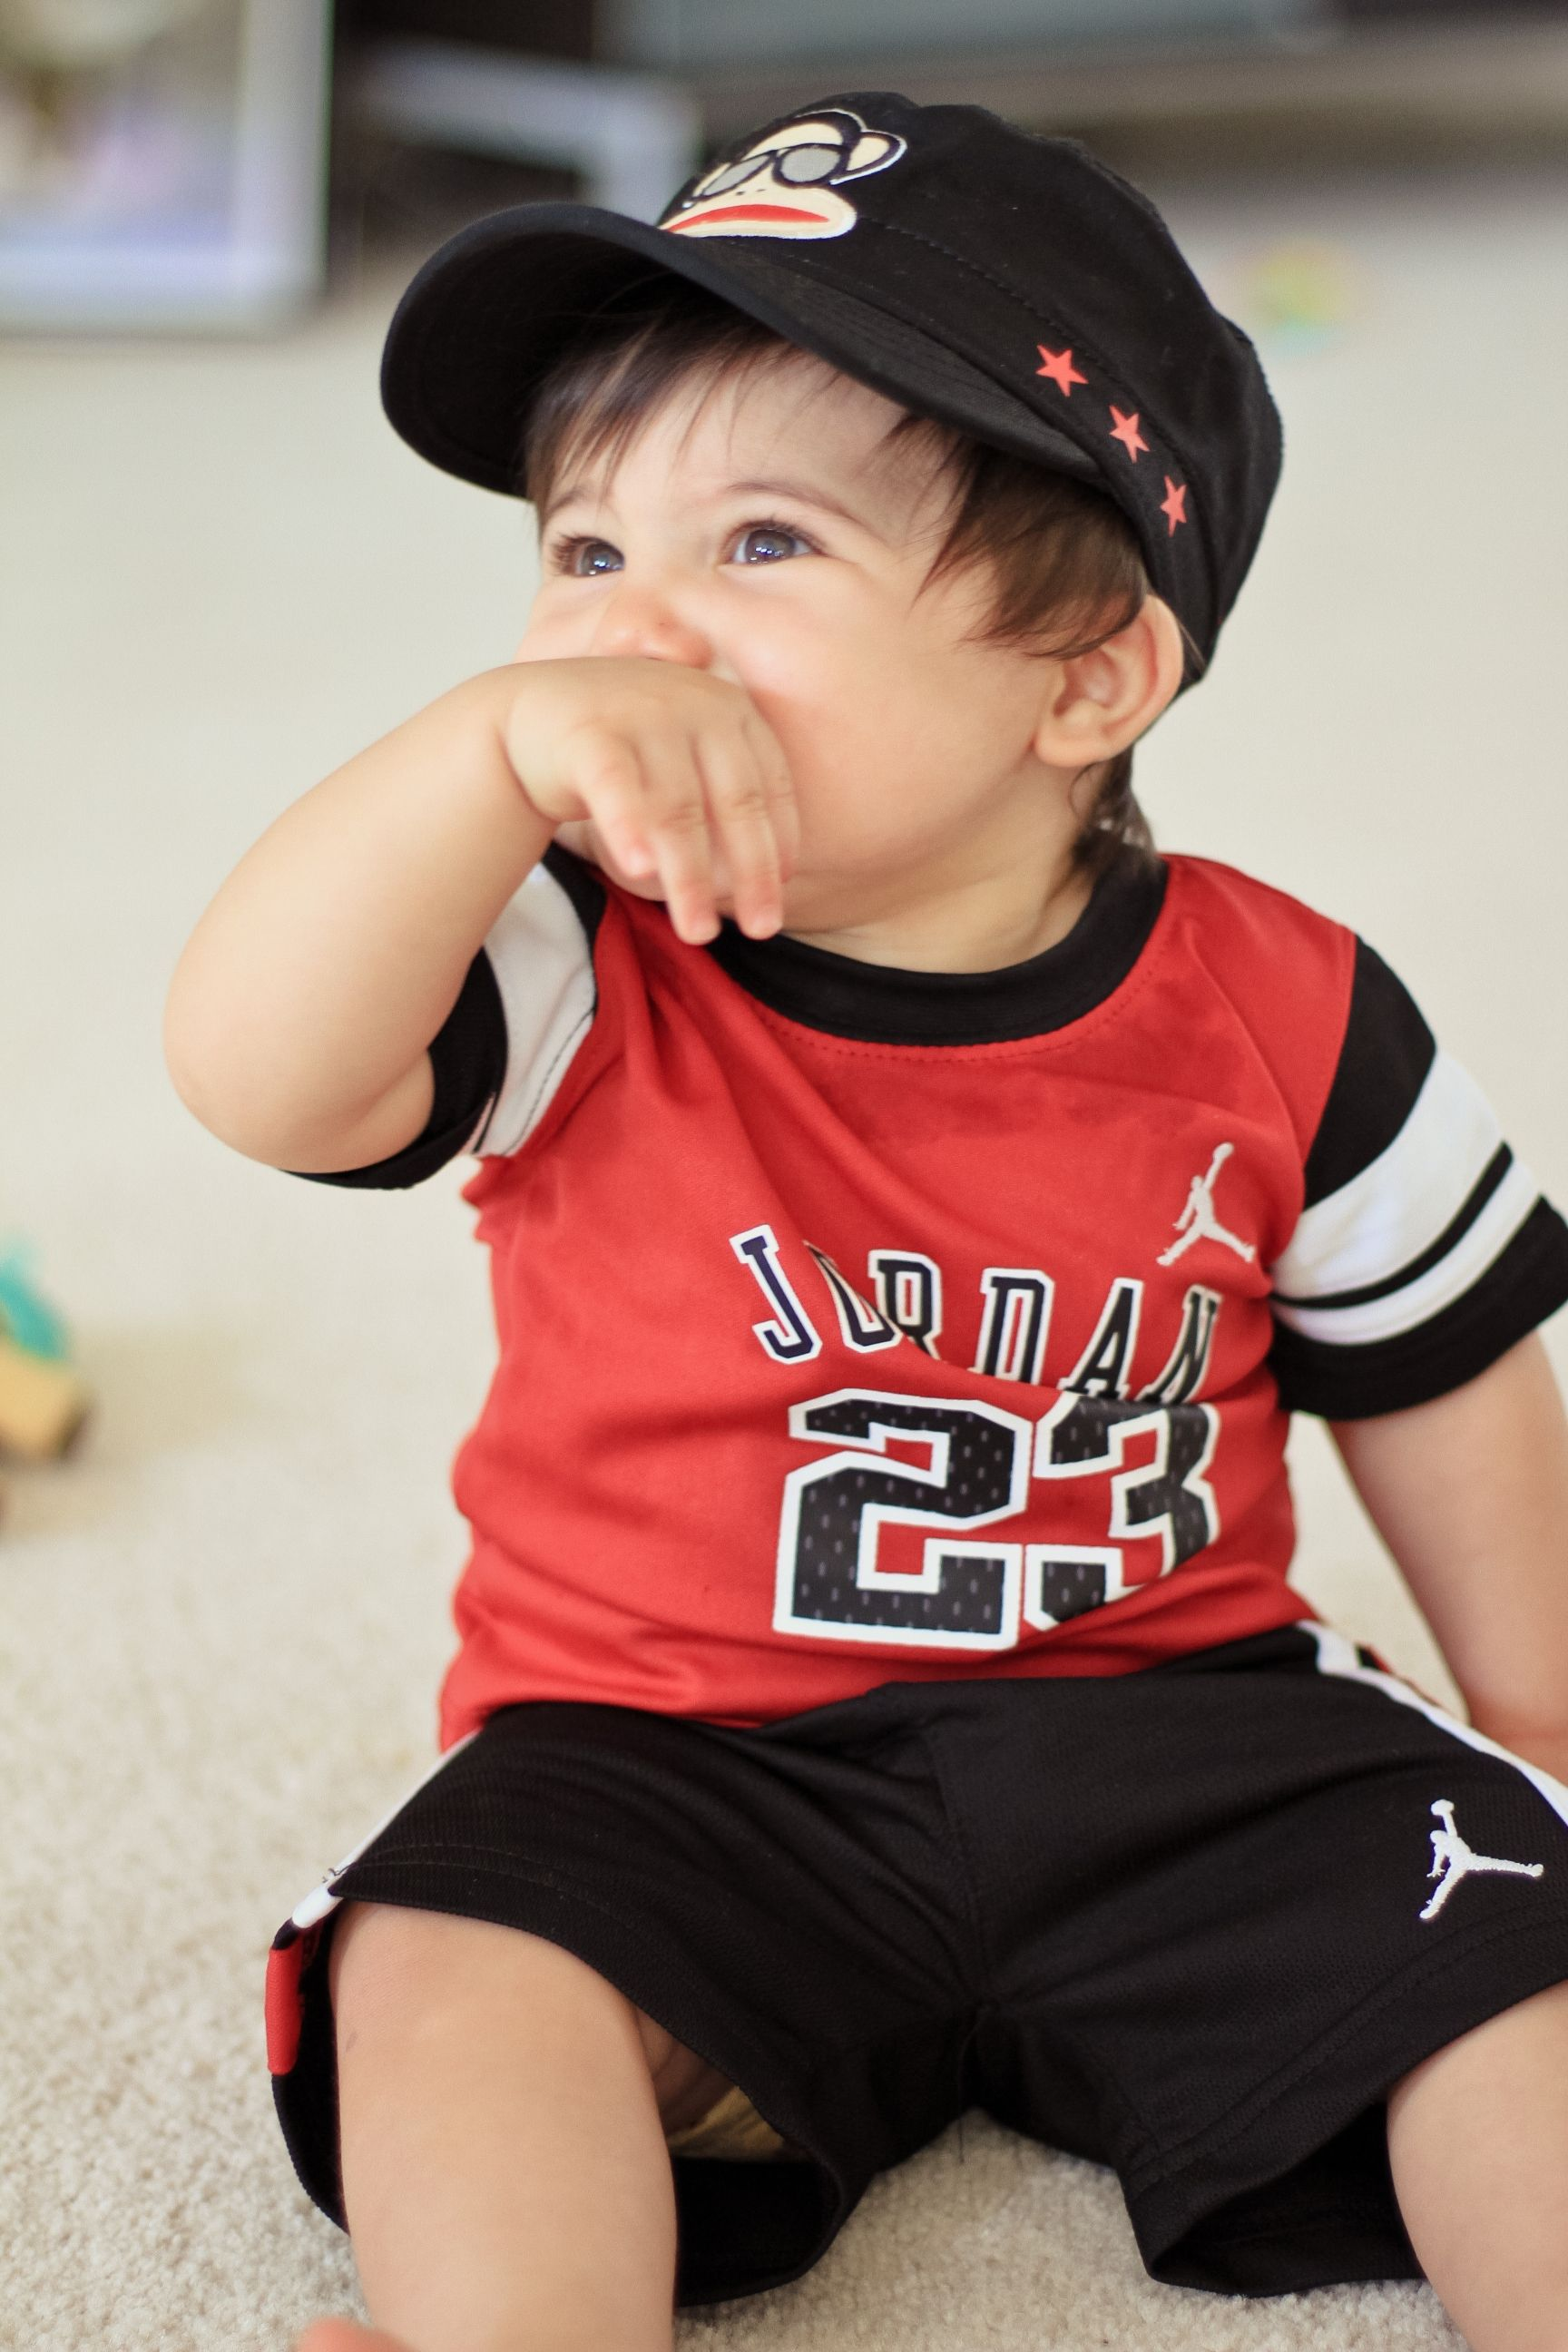 Air Jordan 23 Baby boy outfit with Paul Frank military hat from